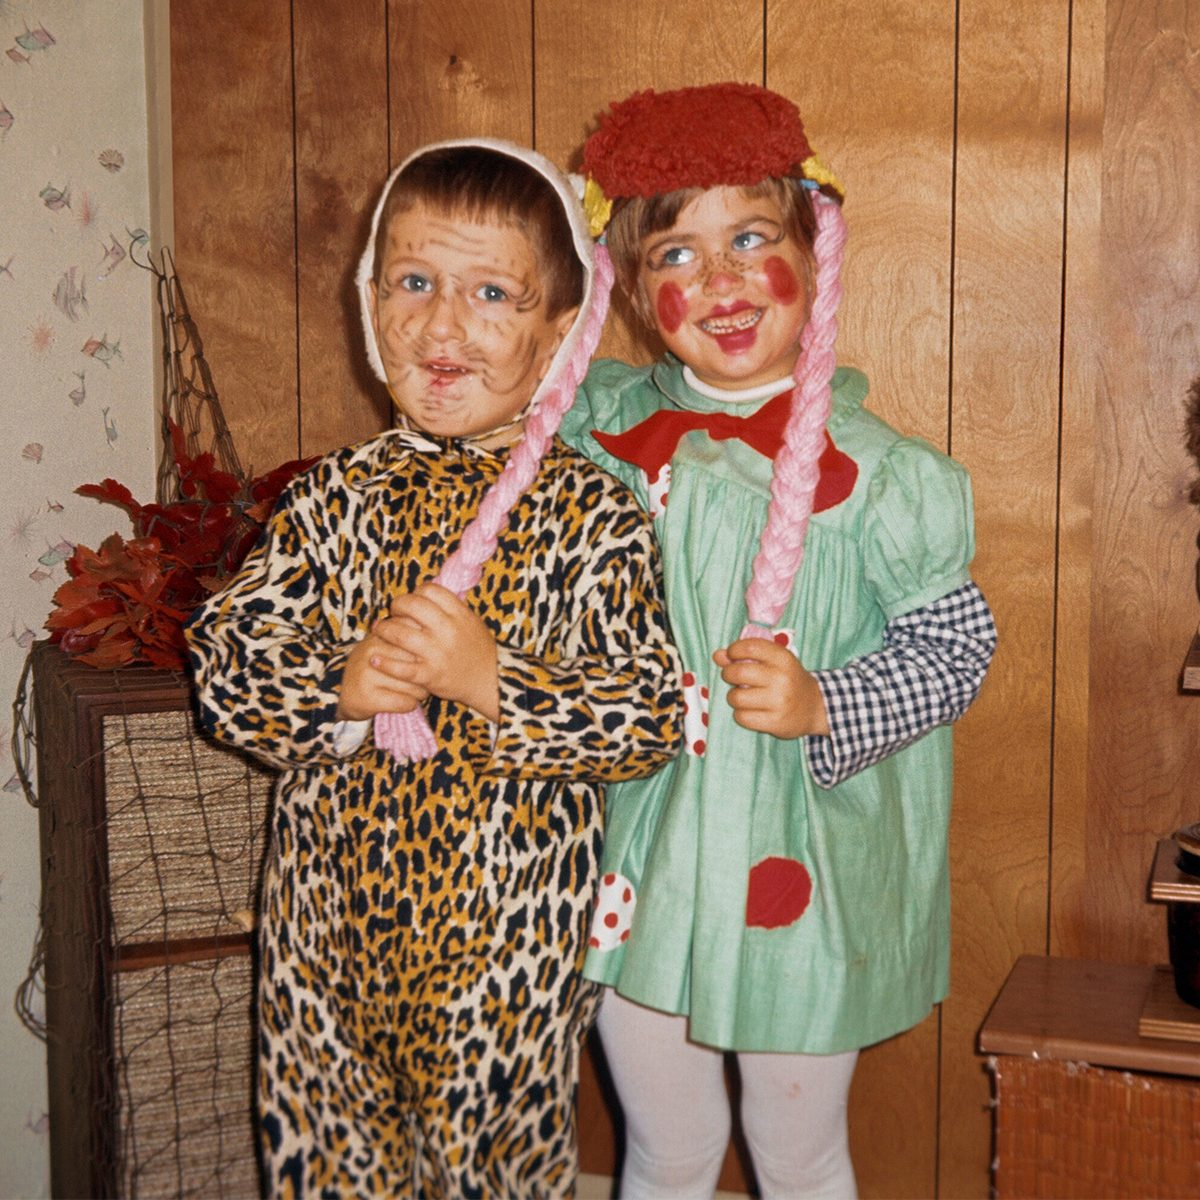 children dressed as a leopard and raggedy anne for Halloween